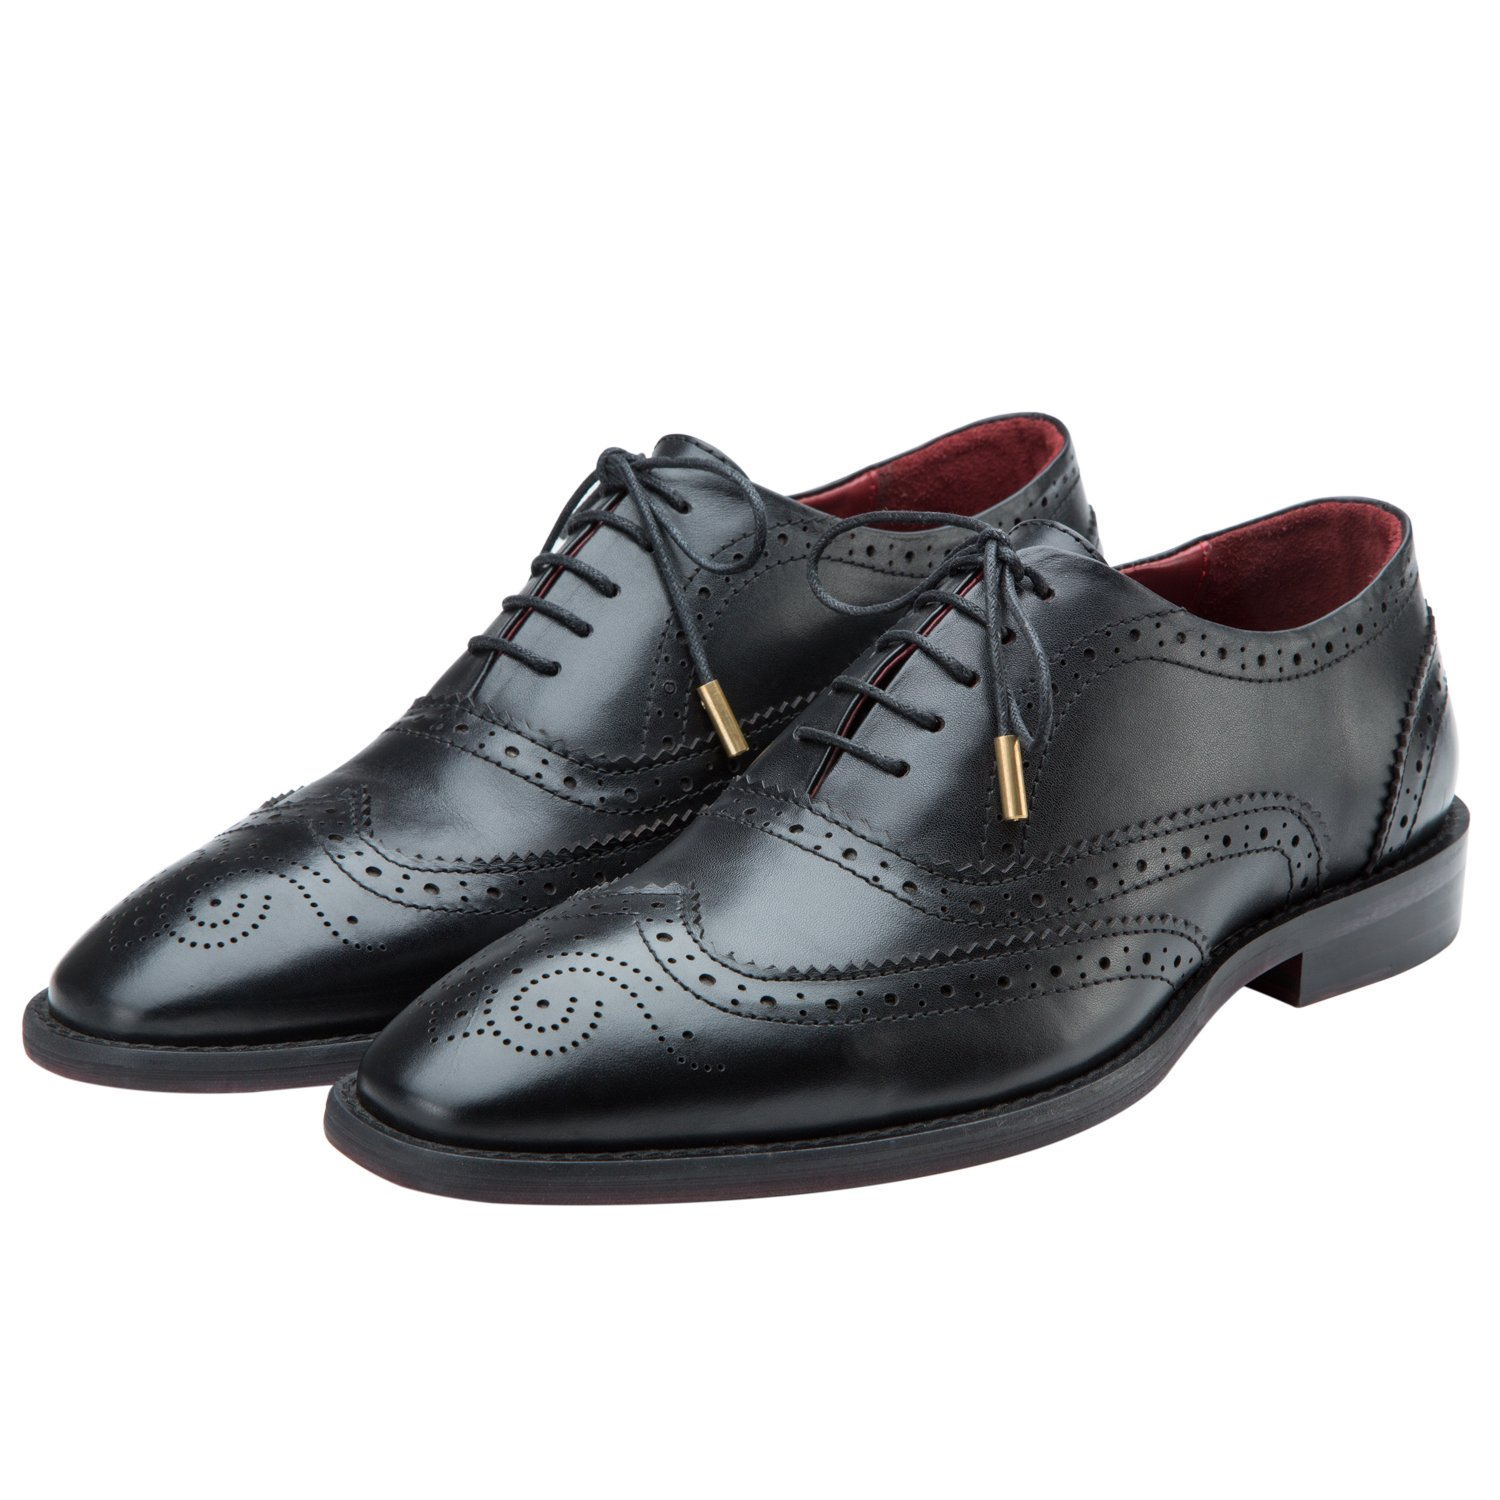 e1249959849bf Lethato Wingtip Brogue Oxford Handcrafted Men's Genuine Leather Lace up  Dress Shoes